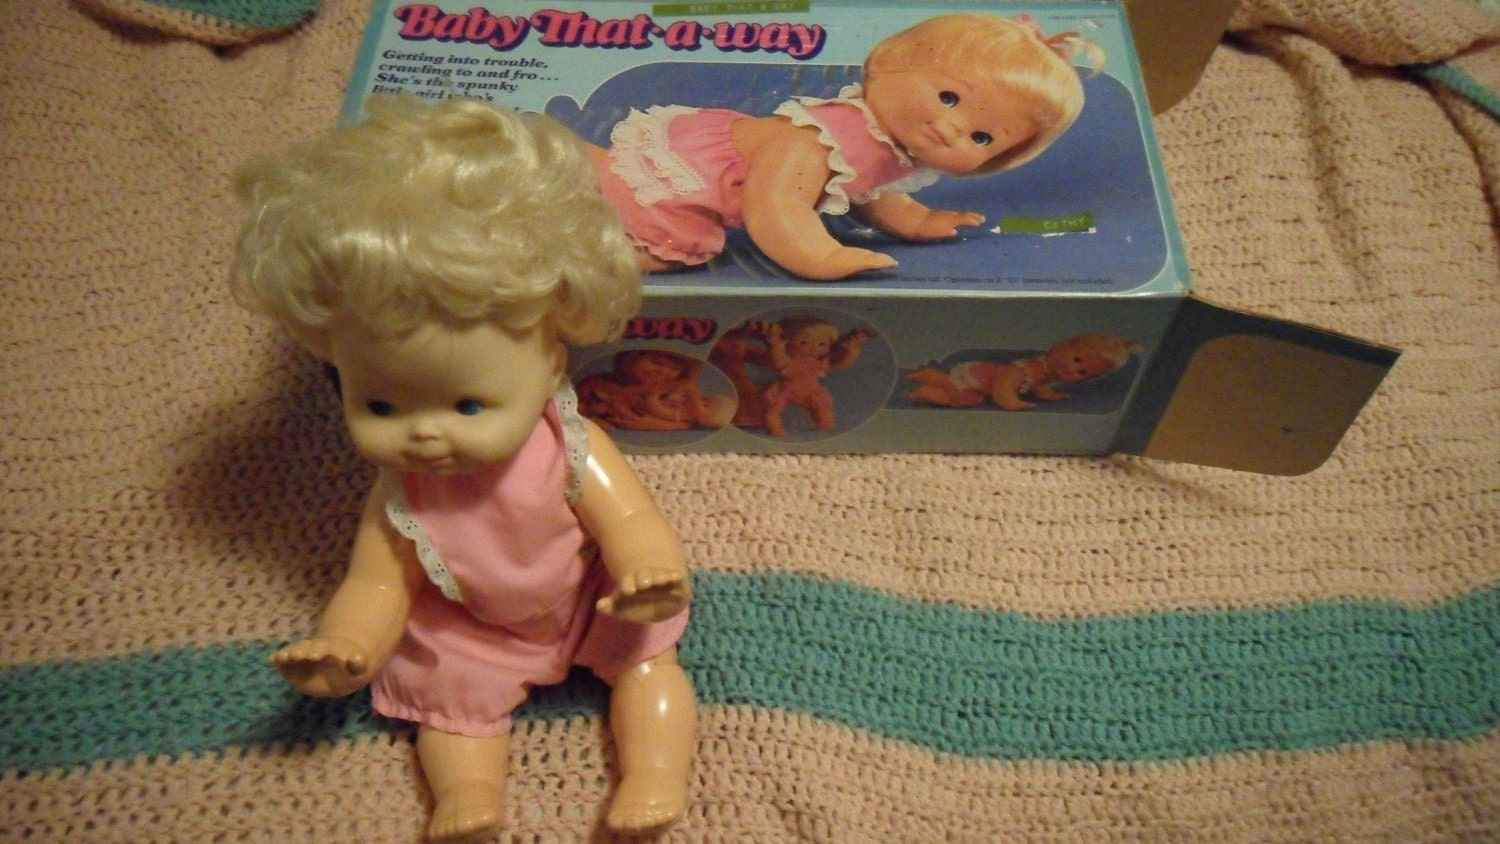 Vintage Doll Baby That A Way 1970s Works By